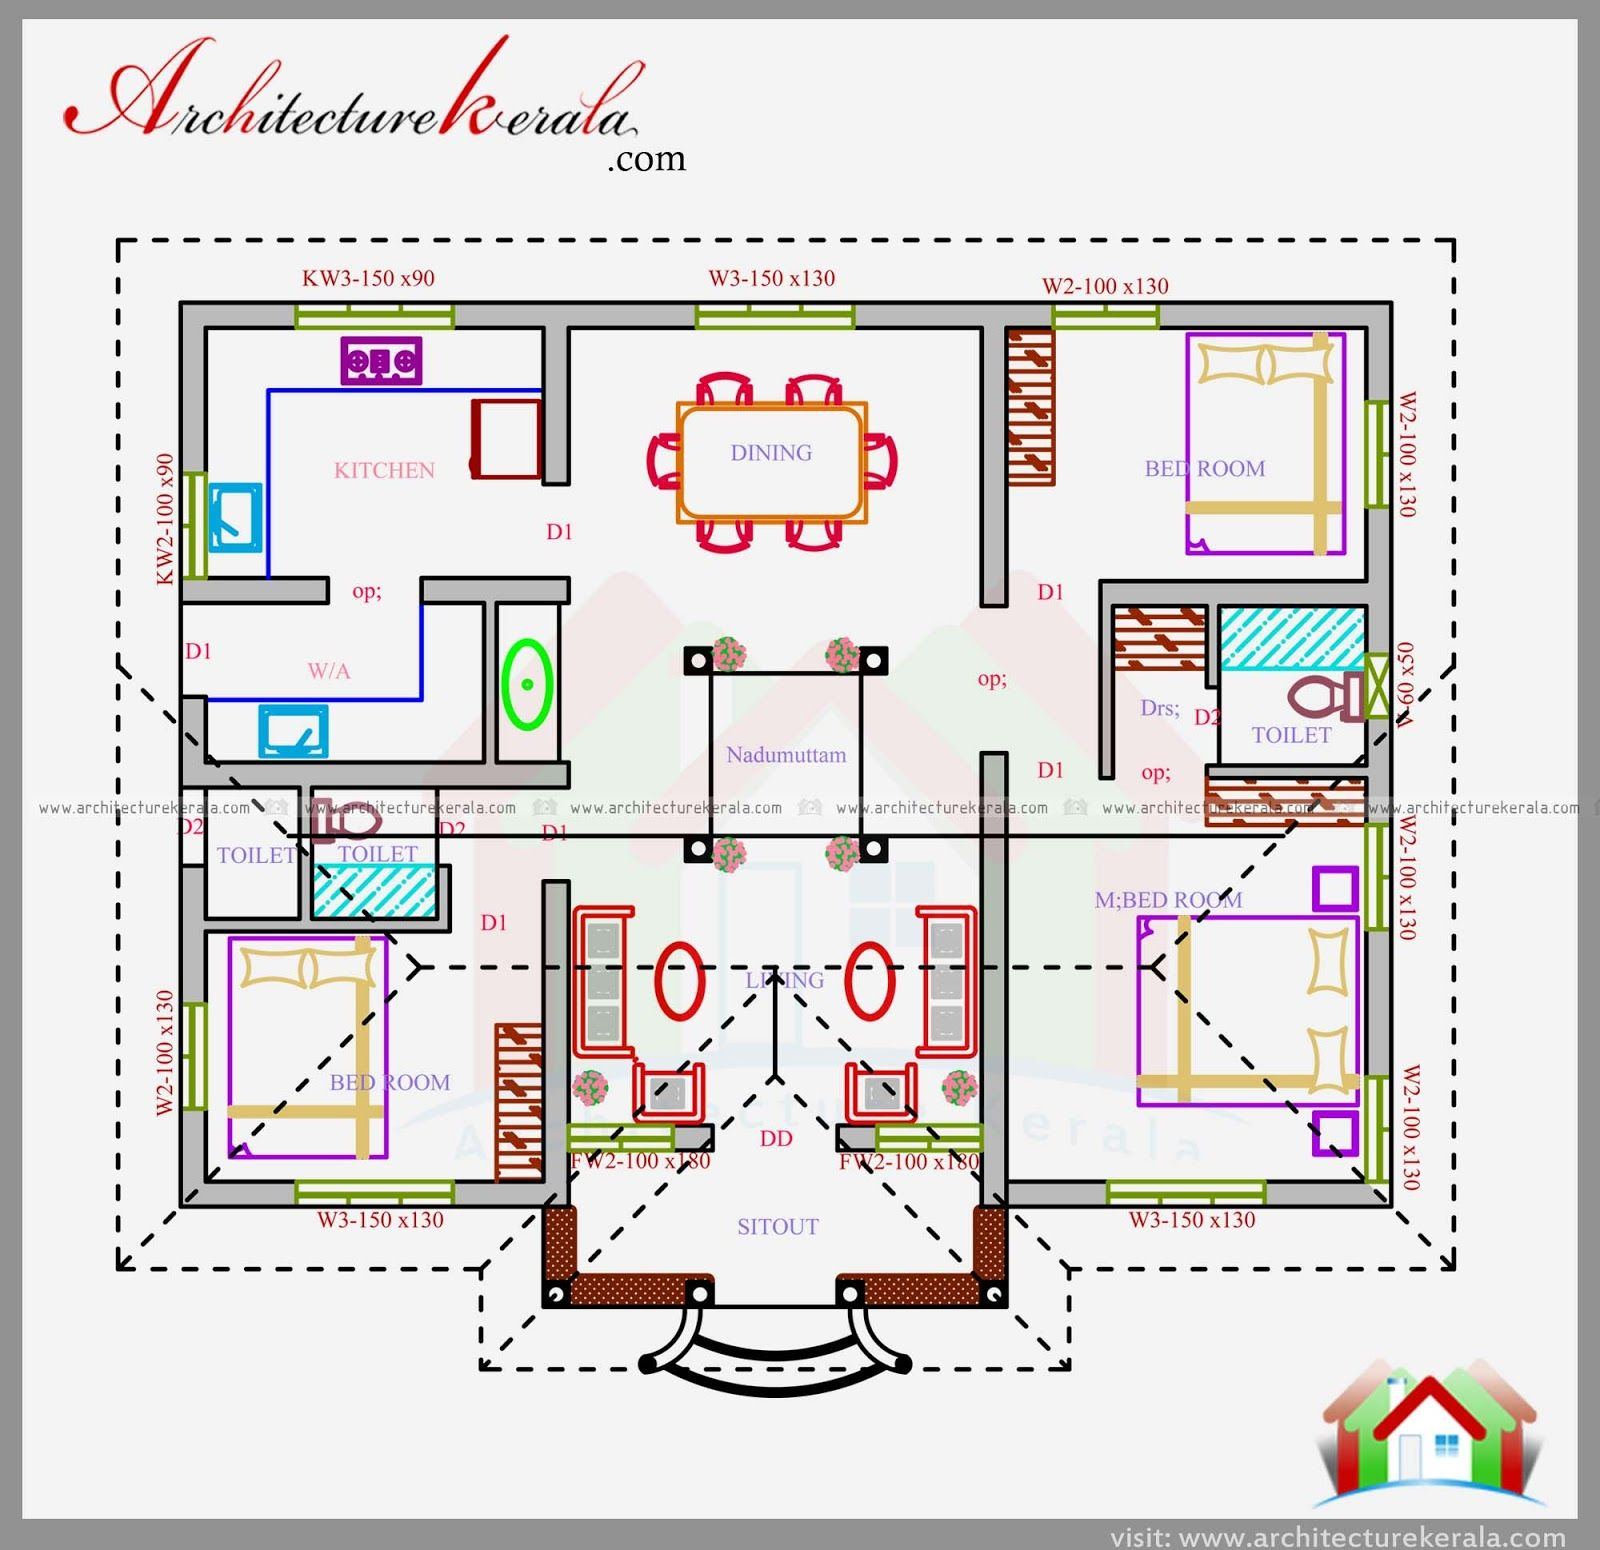 Three Bedrooms In 1200 Square Feet Kerala House Plan Model House Plan Square House Plans Indian House Plans